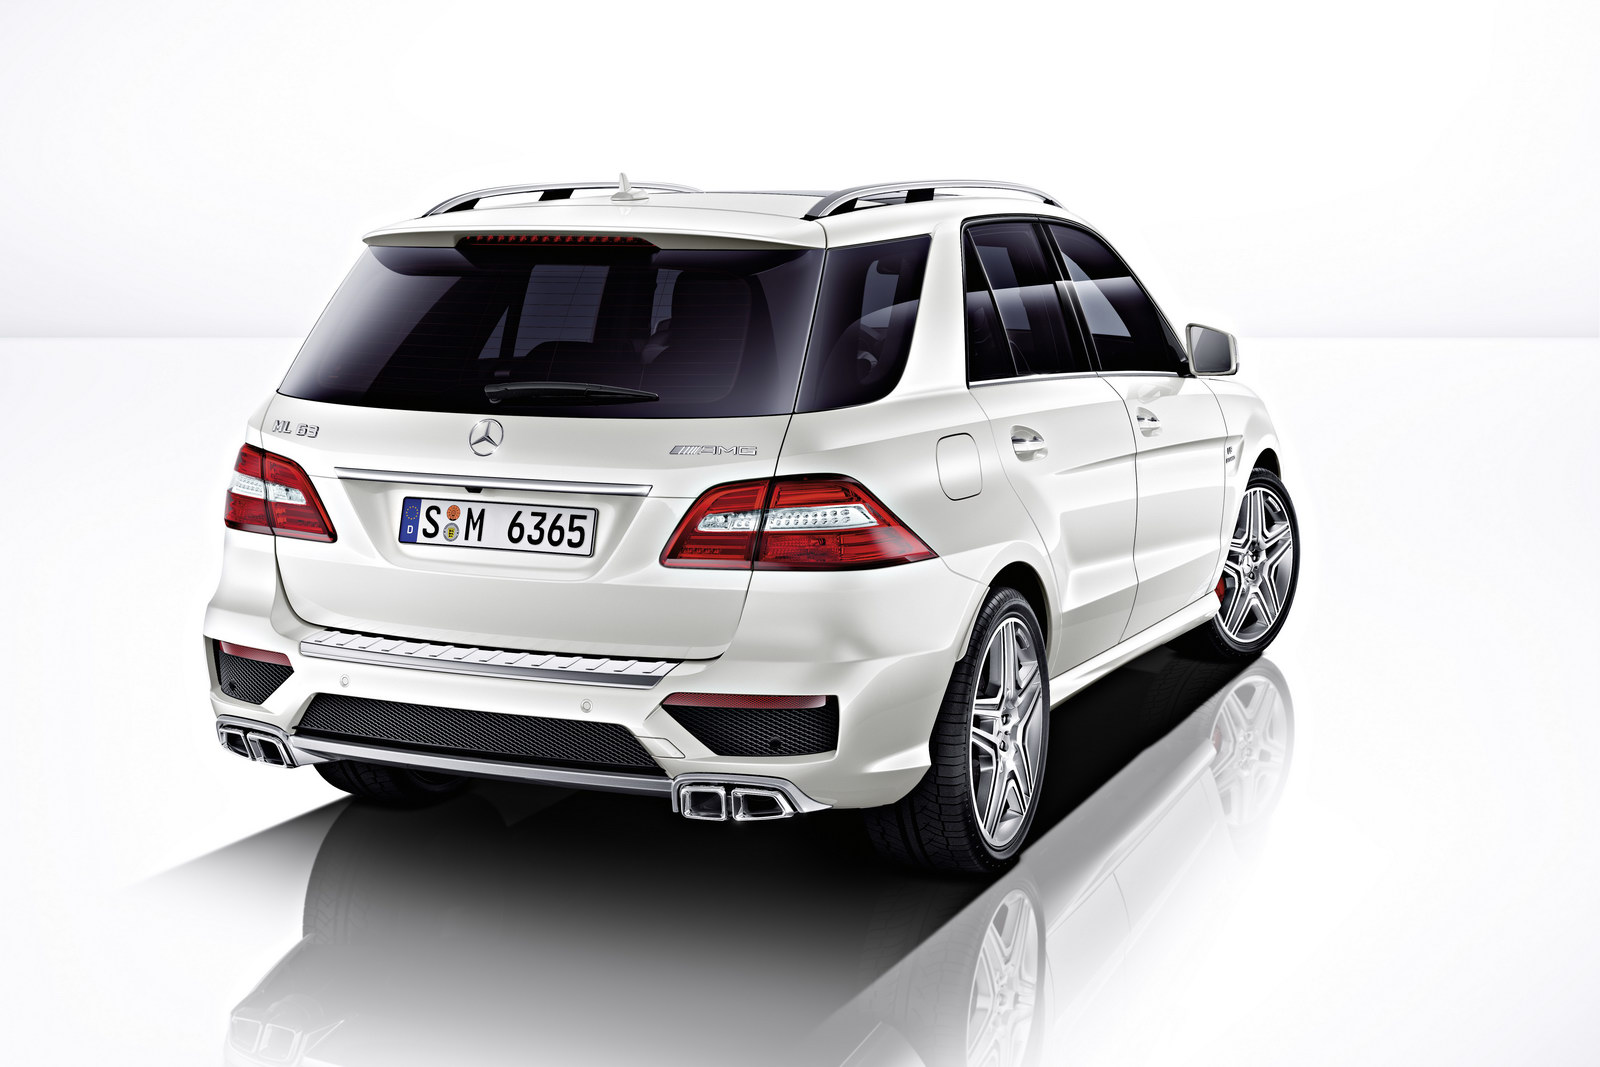 all new mercedes-benz ml 63 amg officially revealed! – benautobahn